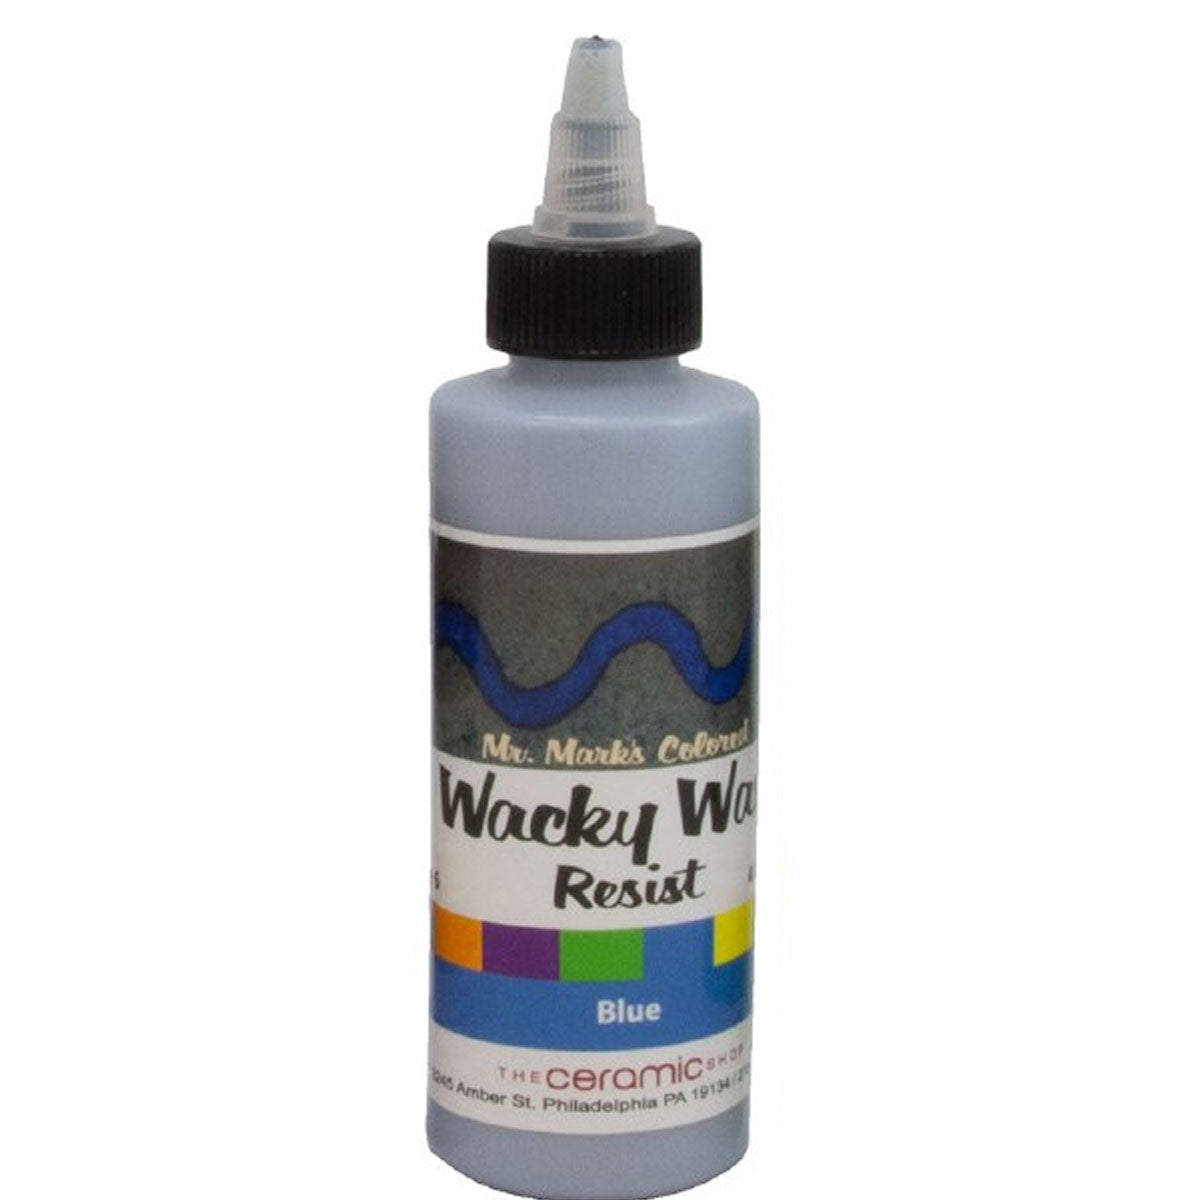 Wacky Wax Resist Blue, 4 oz